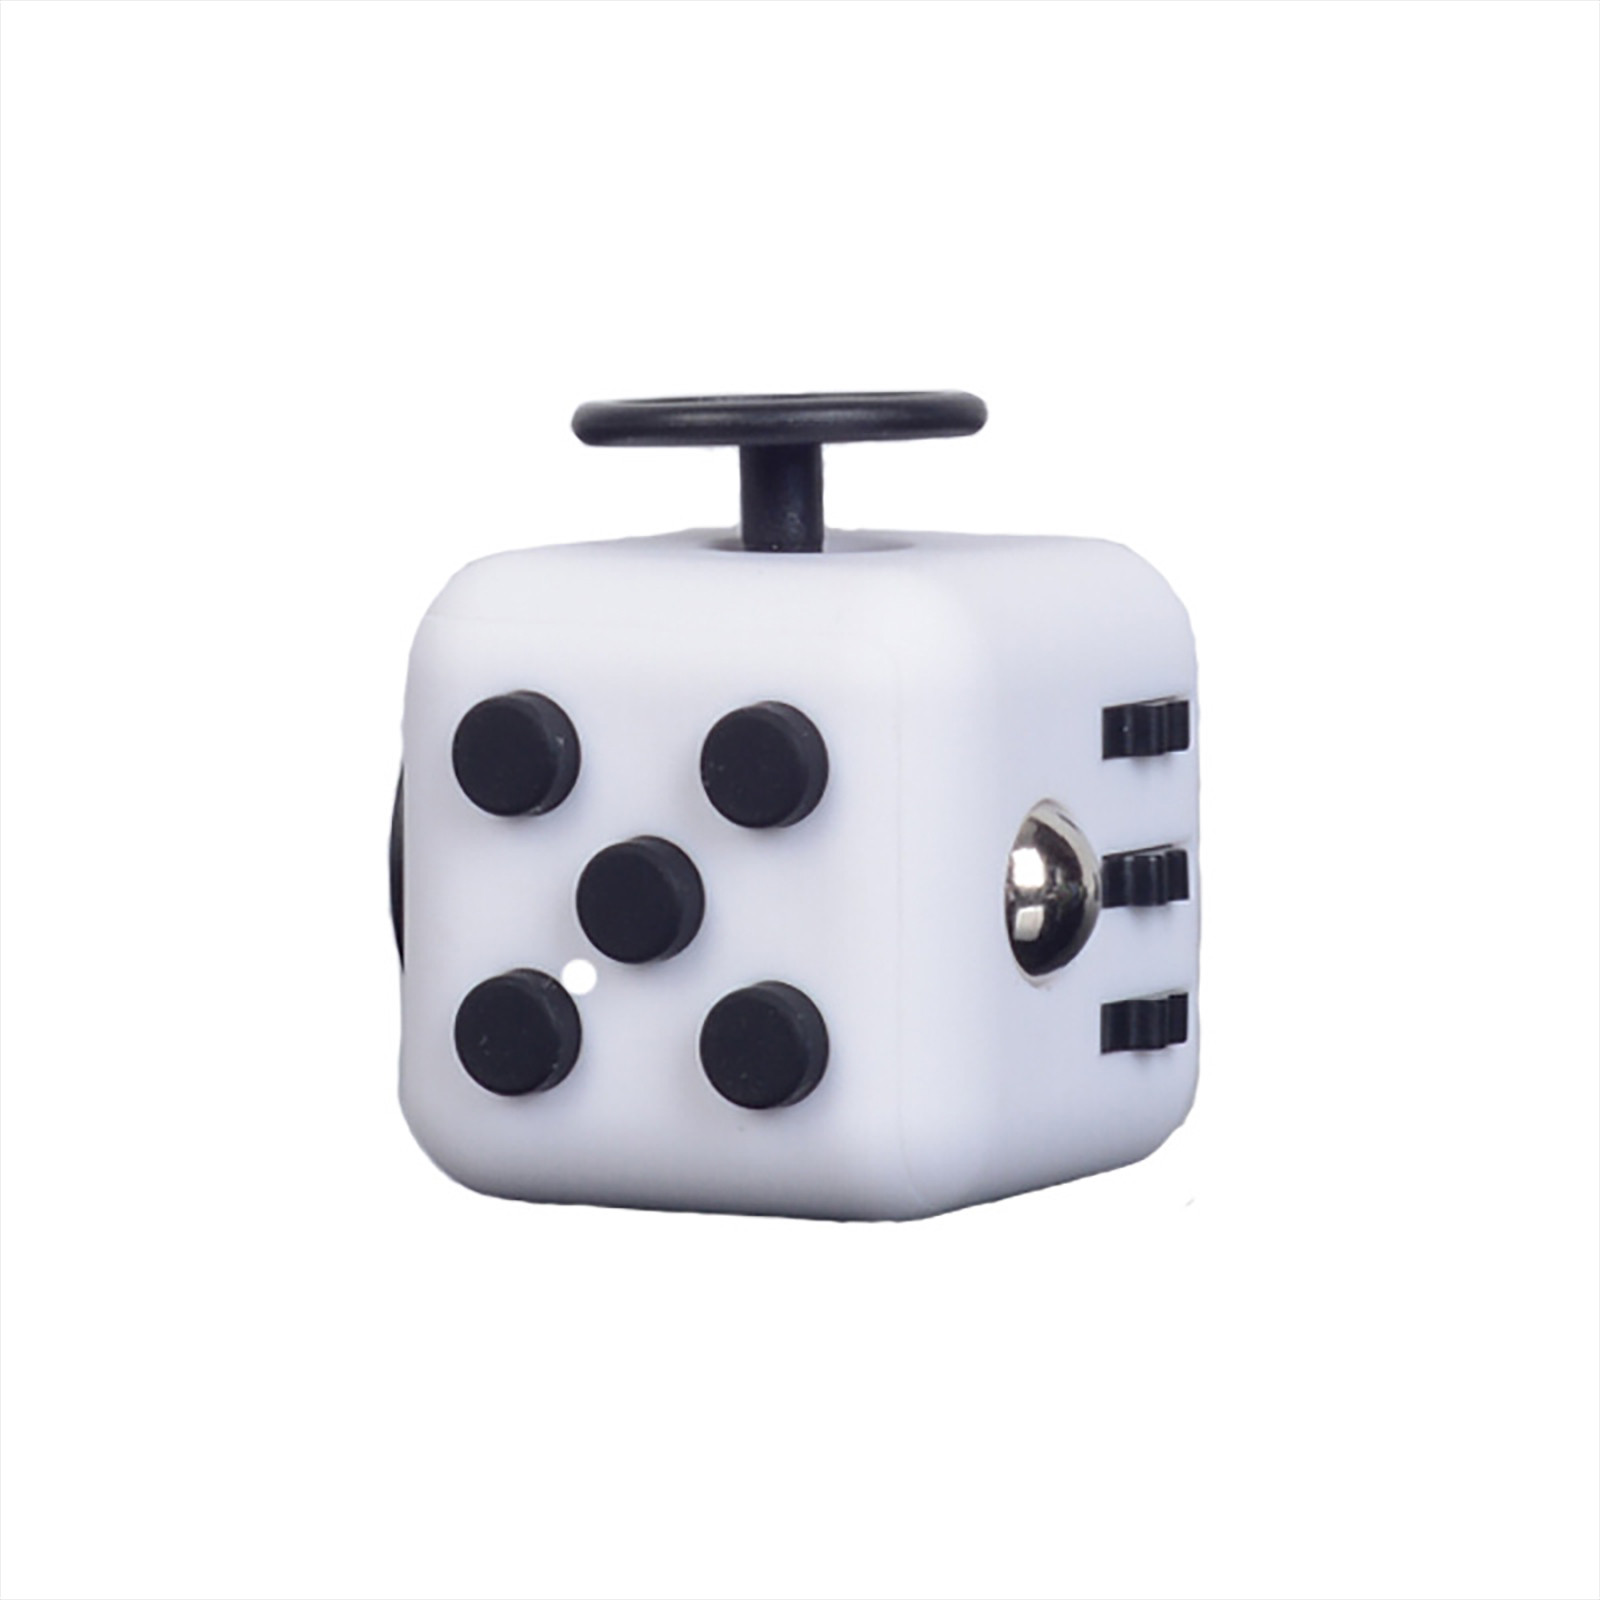 Toys Autism Reduce-Stress Fidget Anxiety Relief Premium-Quality Kids Cu-Be And for All-Ages img2